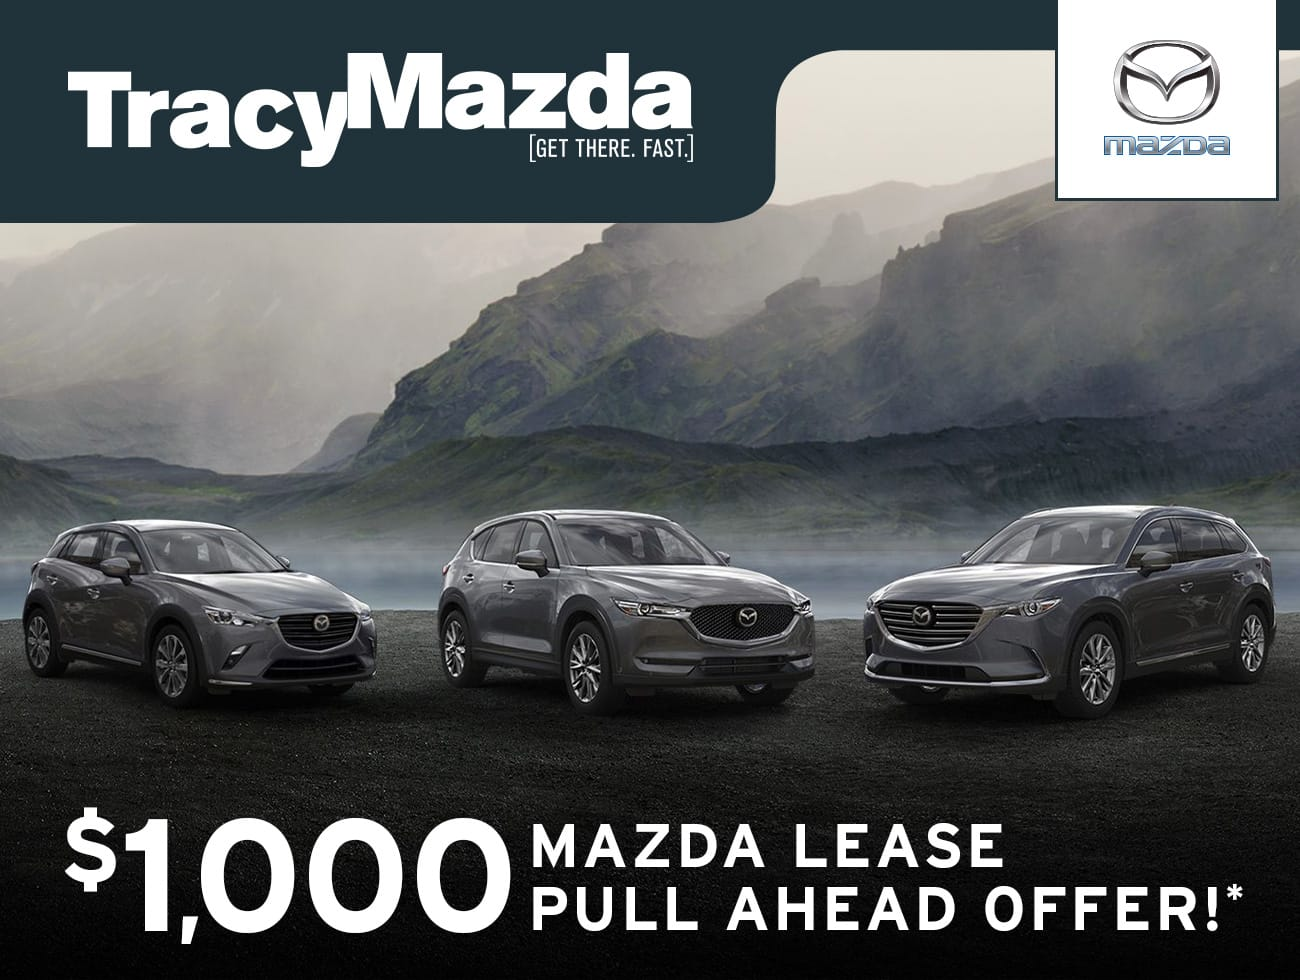 Season of Discovery - $1,000 Mazda Lease Pull Ahead Offer*